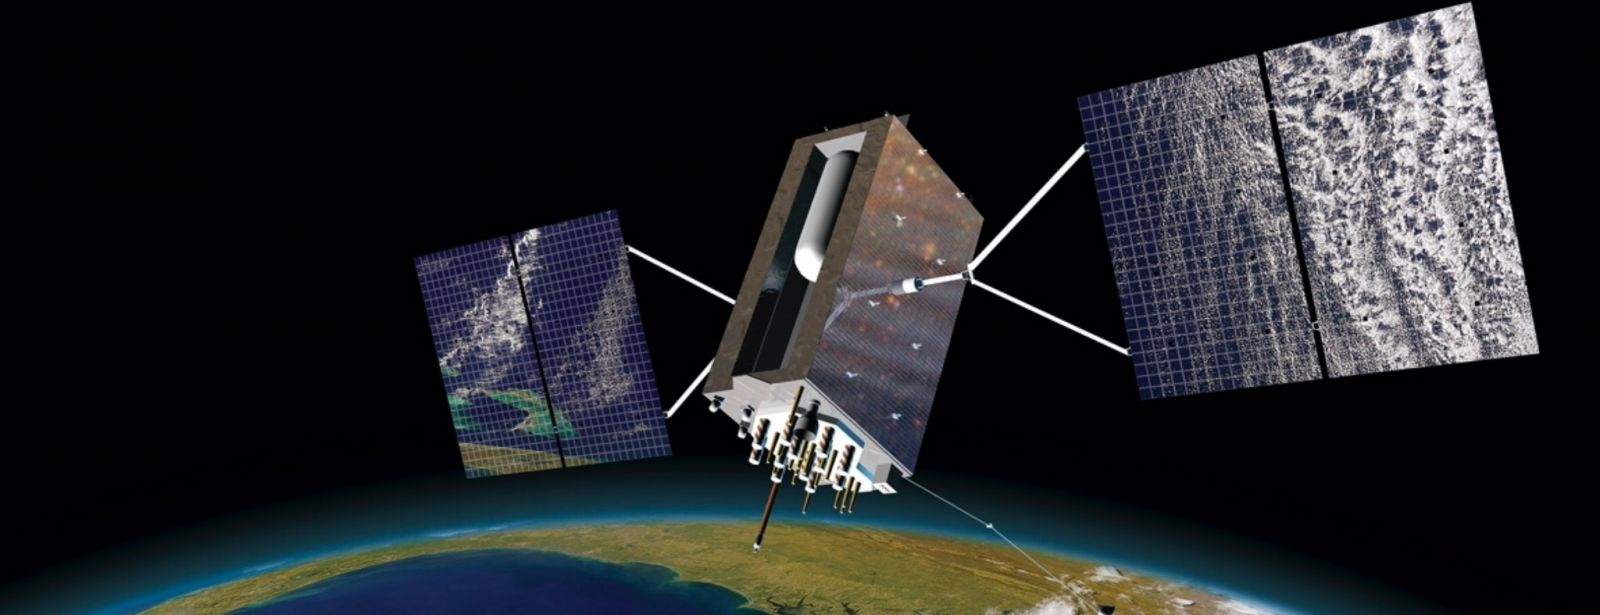 Artist's depiction of a GPS III satellite in orbit. Image credit: Lockheed Martin